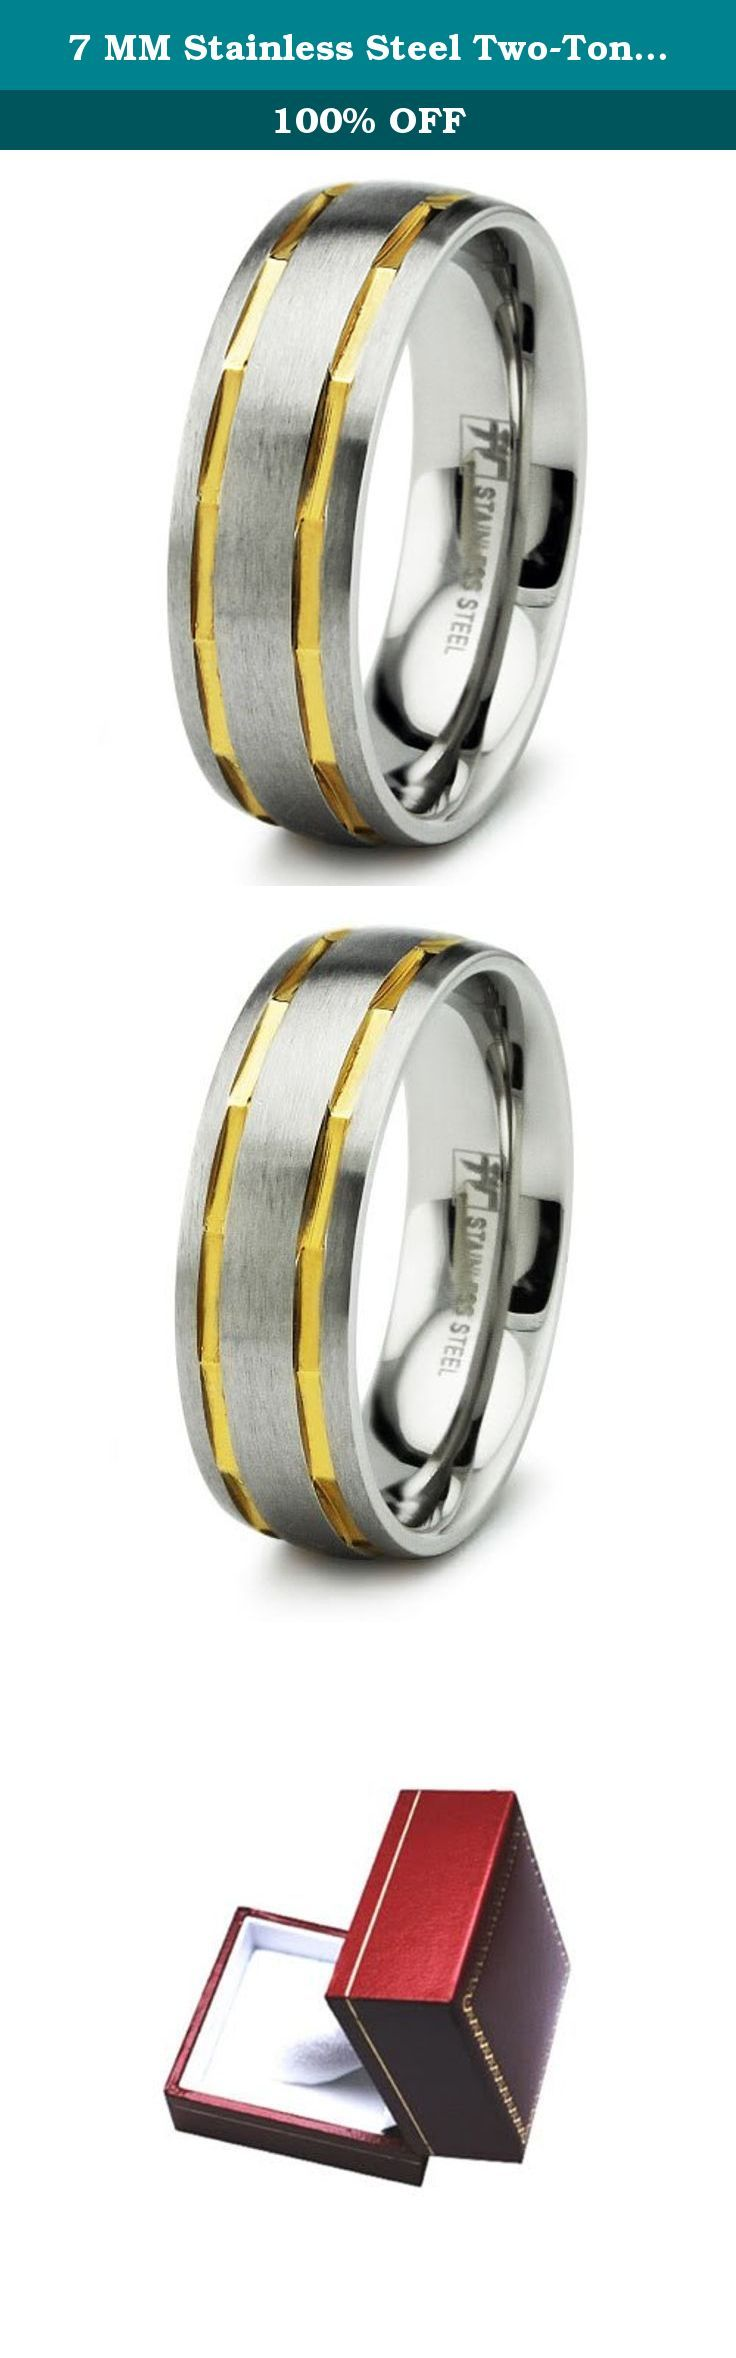 7 MM Stainless Steel Two-Tone Dual Gold Strip Wedding Band Ring, Size 12. We use surgical grade stainless steel for our massive selection of metal jewelry. Surgical grade stainless steel is abundant in our collection due to its hard body, incredible resistance to corrosion and tarnish.